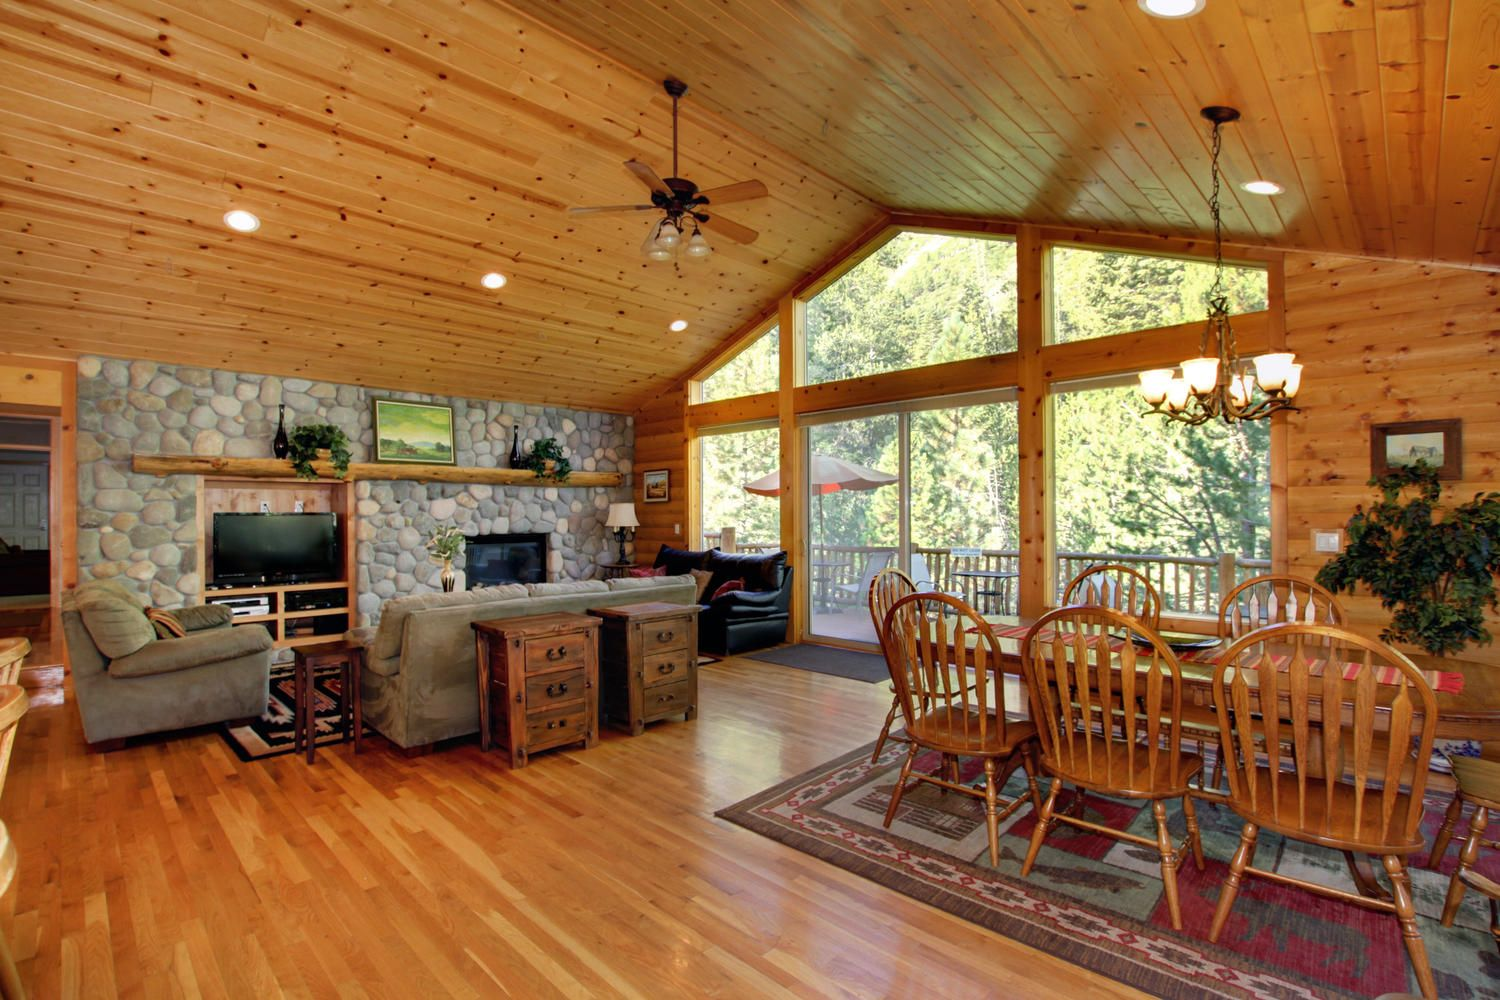 Rustic wood ceiling and walls lake tahoe vacation